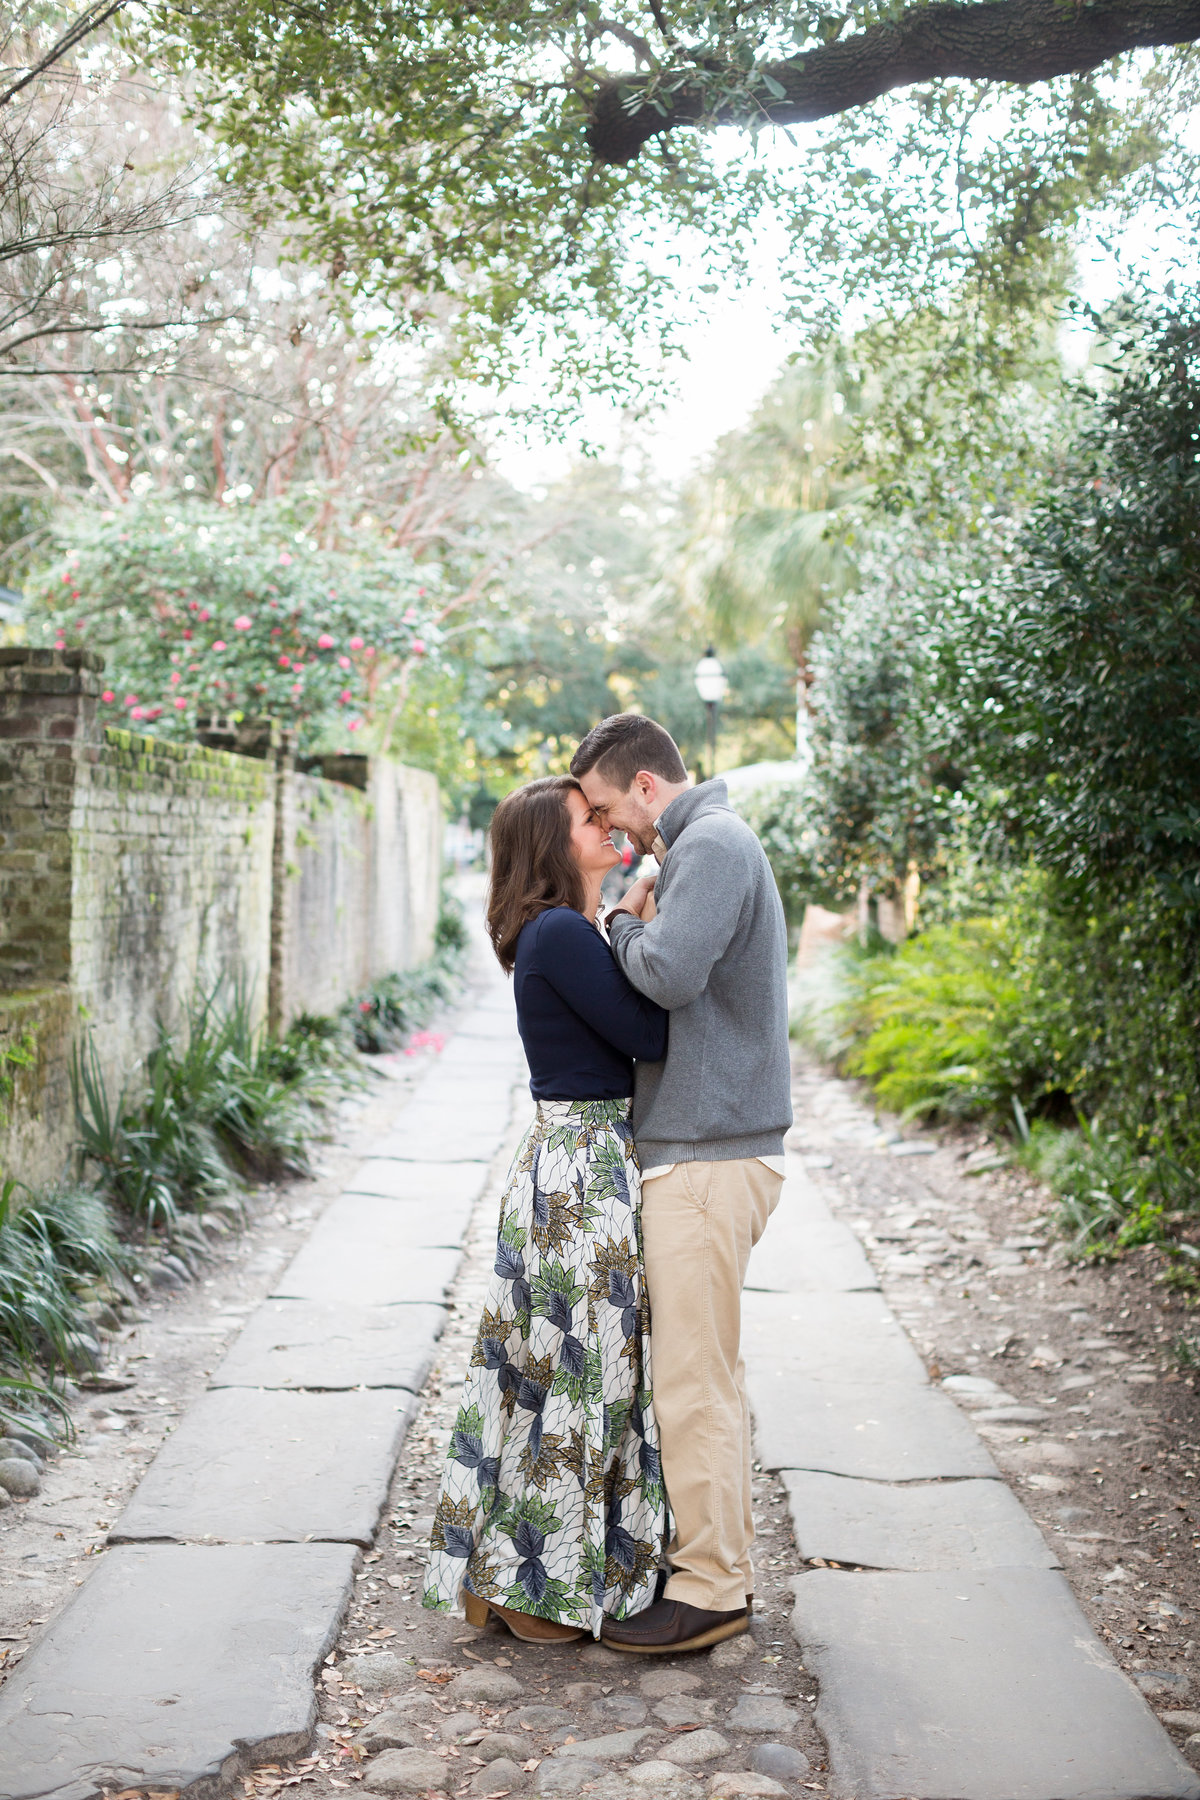 Joe and Keenan Engaged - Samantha Laffoon Photography-75